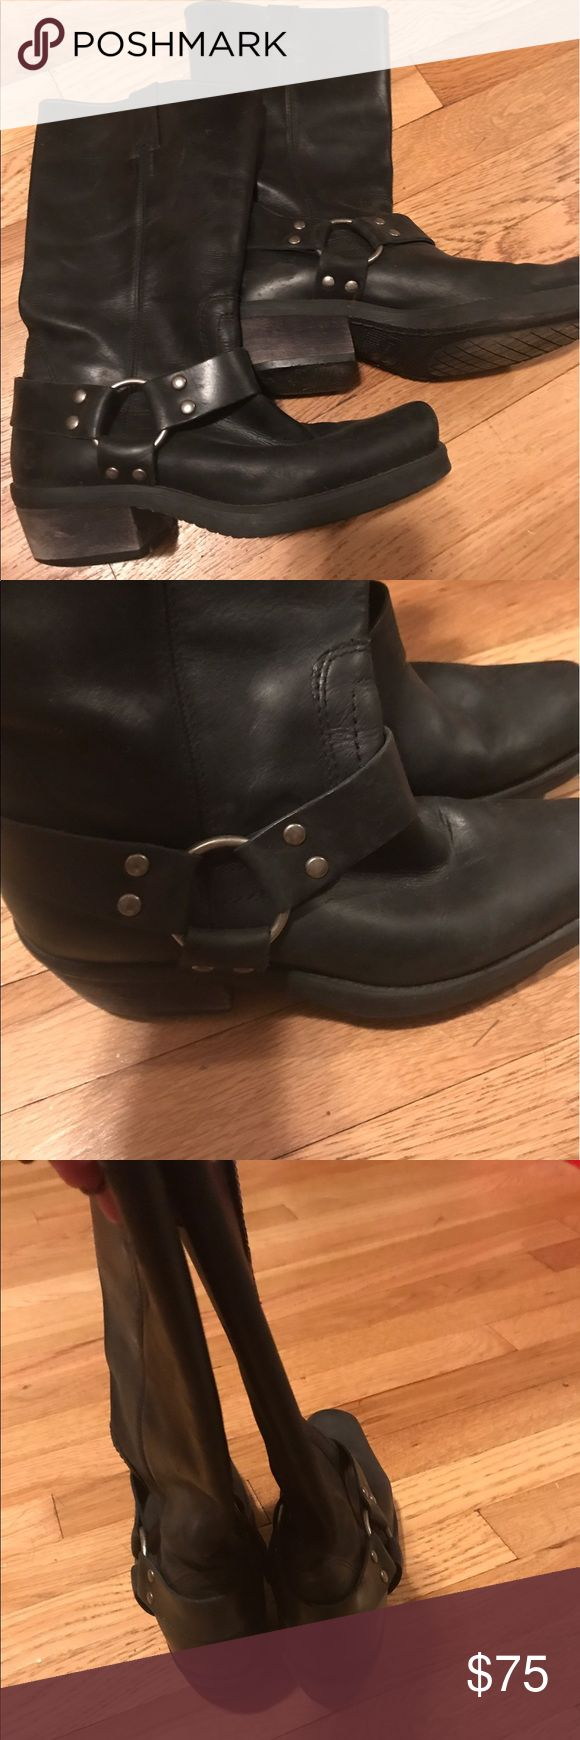 Jenny motorcycle boots, size 7.5 Very good condition, black leather, length to half calf jenny Shoes Combat & Moto Boots